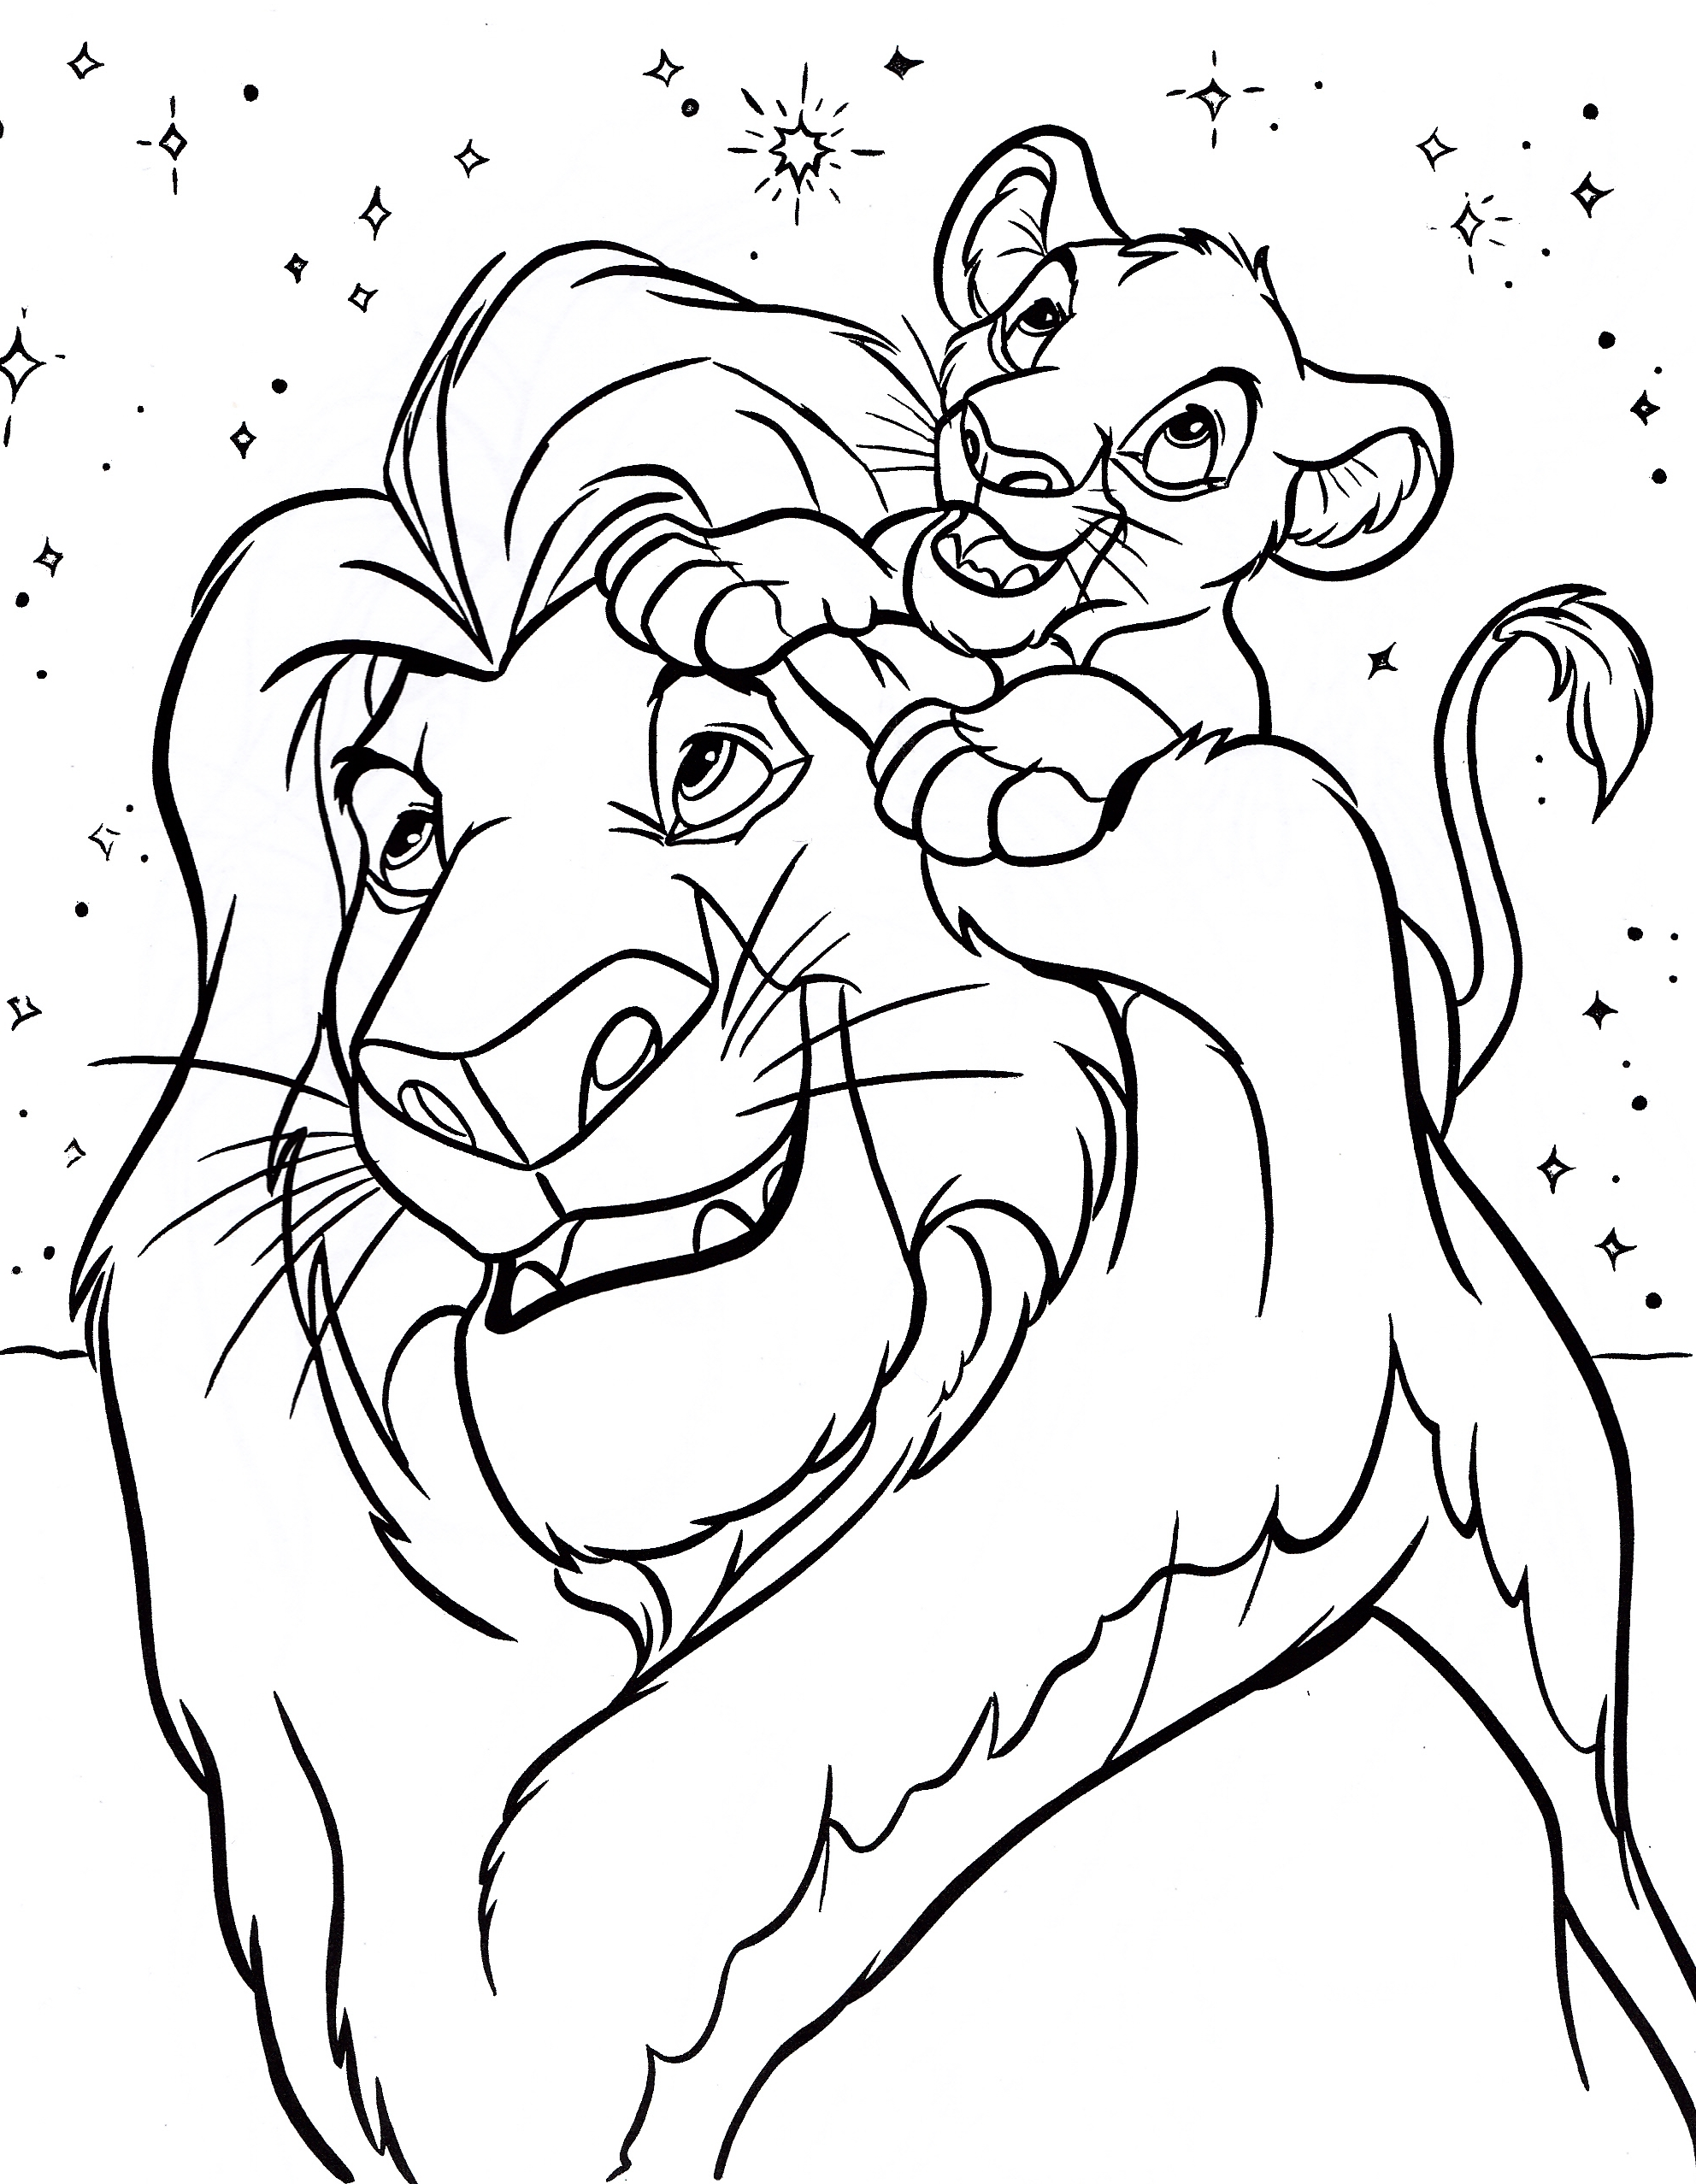 Free Printable Simba Coloring Pages For Kids Coloring Pages From Disney